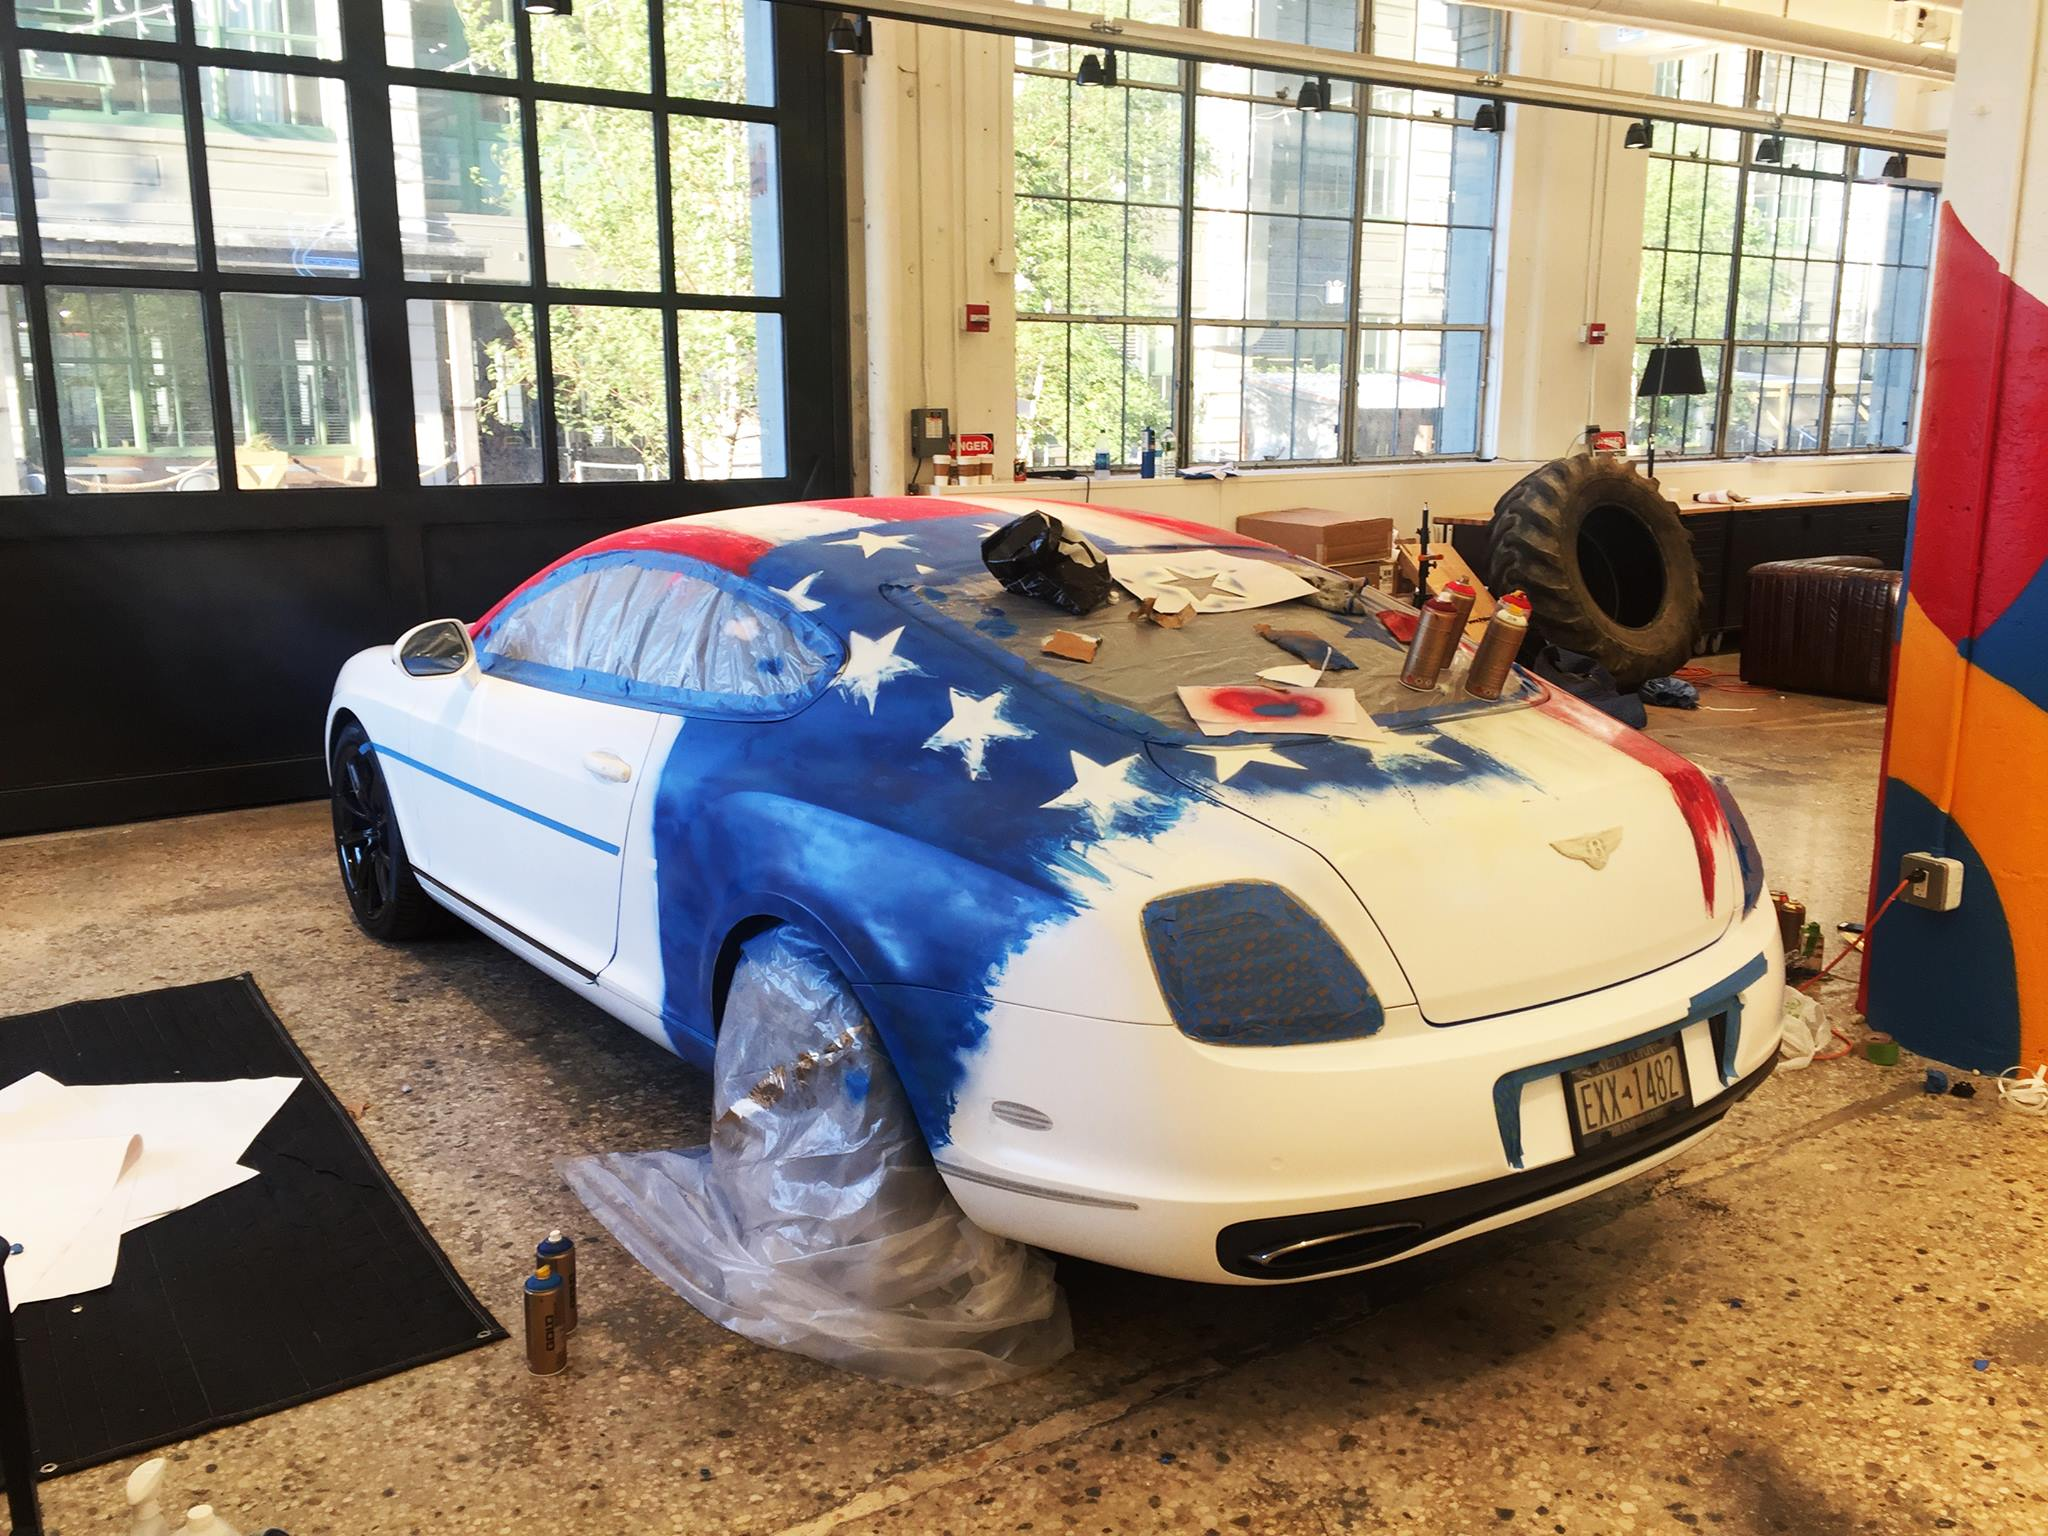 Miata with poppy art car livery isn t just for show autoevolution -  Bentley Conti Gt Art Car Combines Batman And American Flag